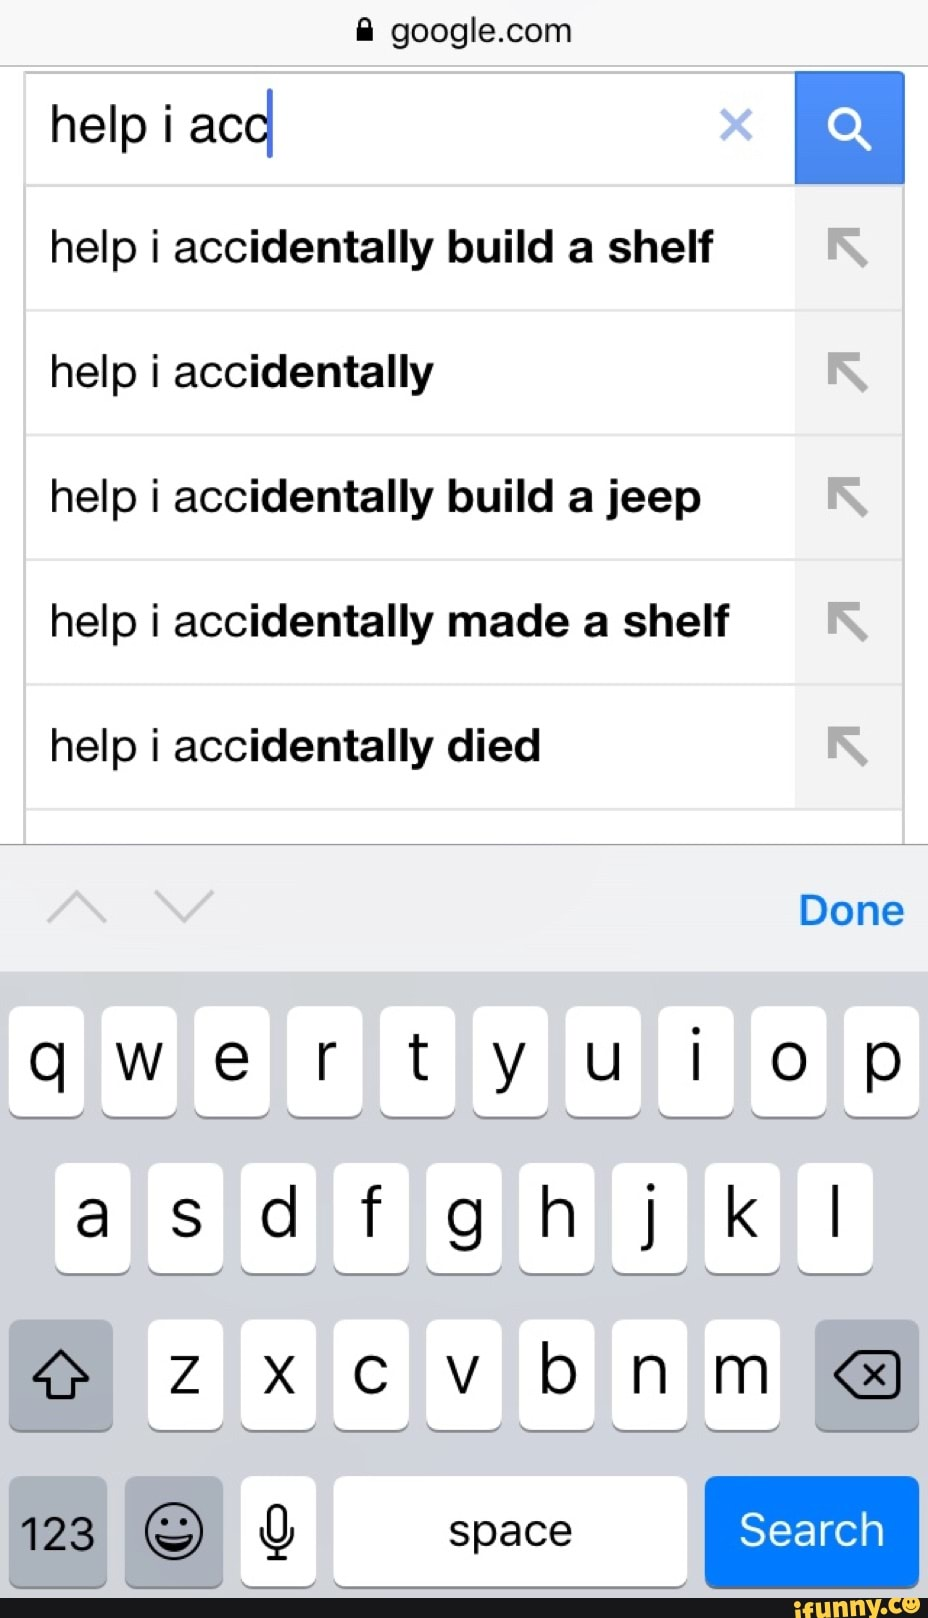 Help I Accidentally Build A Jeep >> Help I Ach Help I Accidentally Build A Shelf Help I